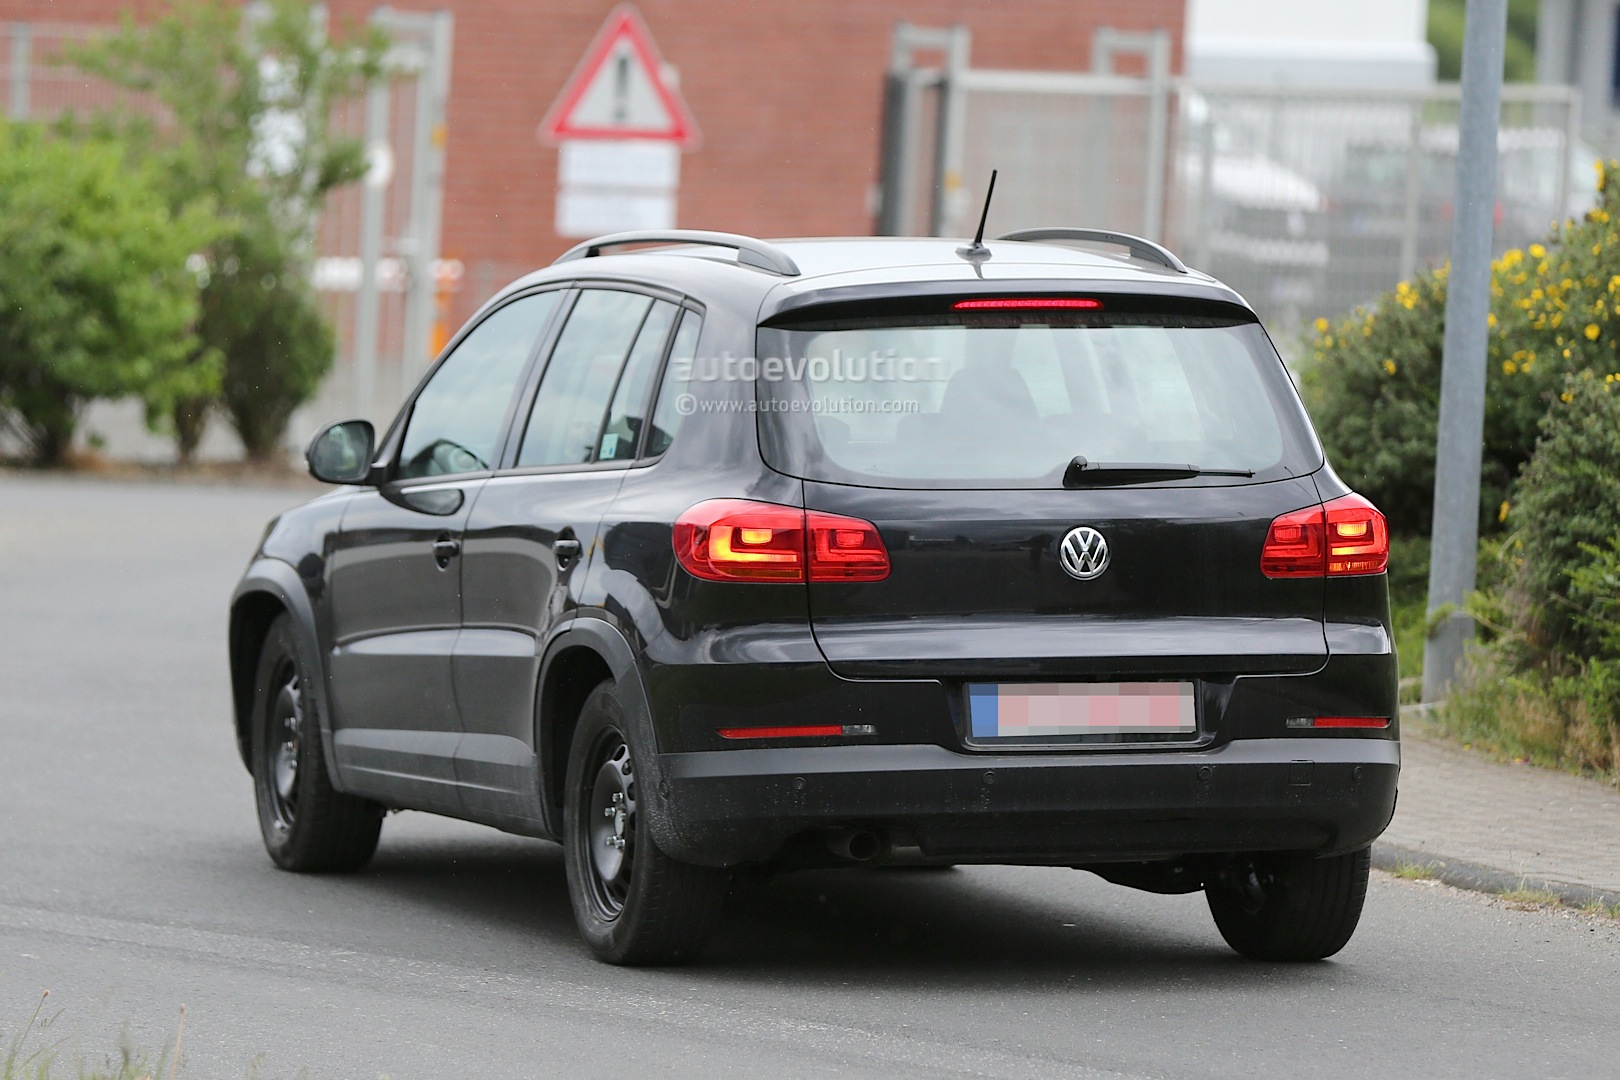 Spyshots: All-New 2015 Volkswagen Tiguan Will Be Wider - autoevolution